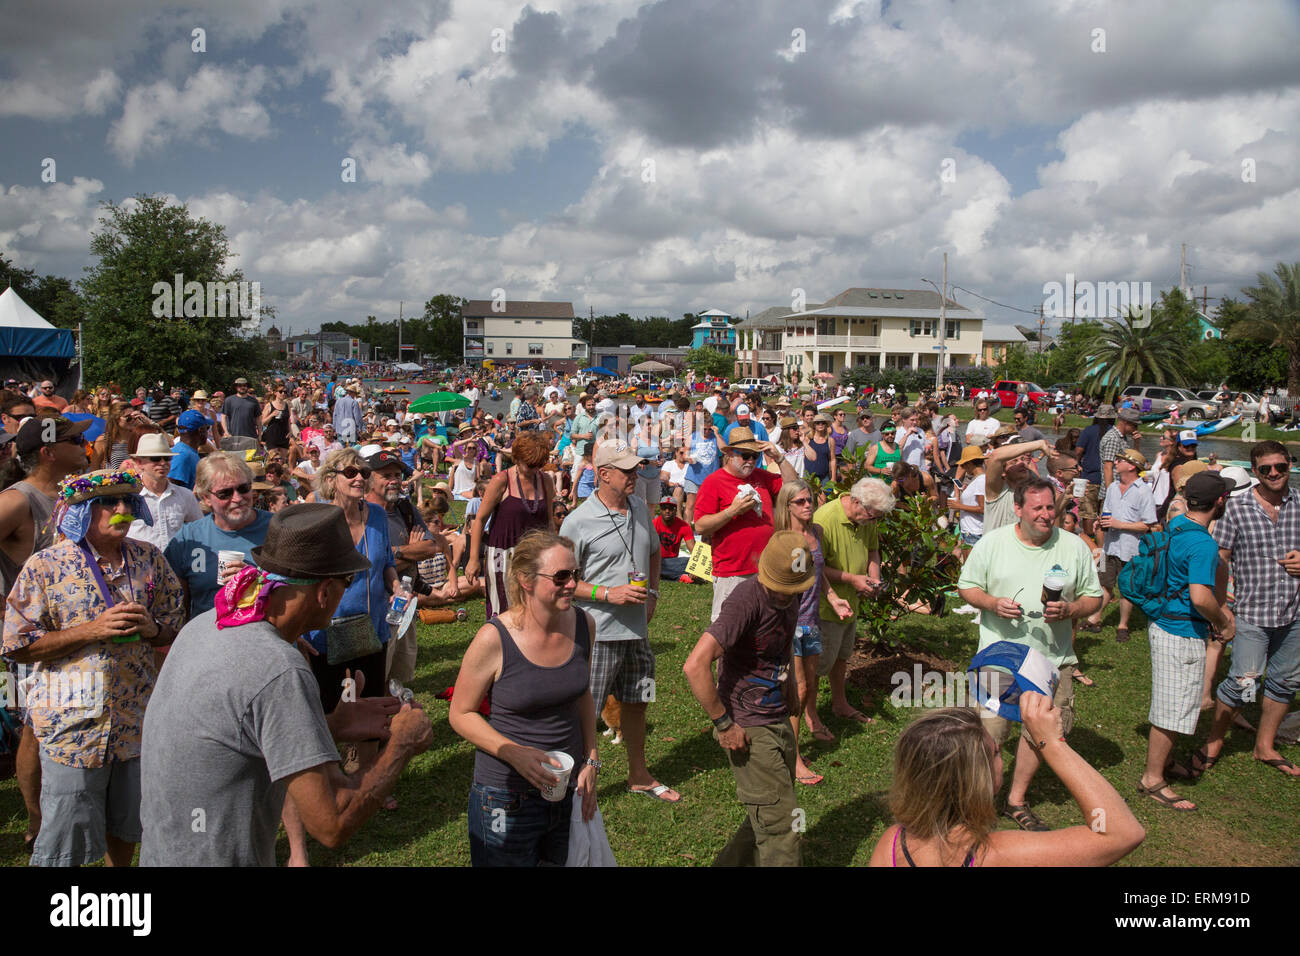 New Orleans, Louisiana - People listen to music at the Mid-City Bayou Bougaloo. - Stock Image